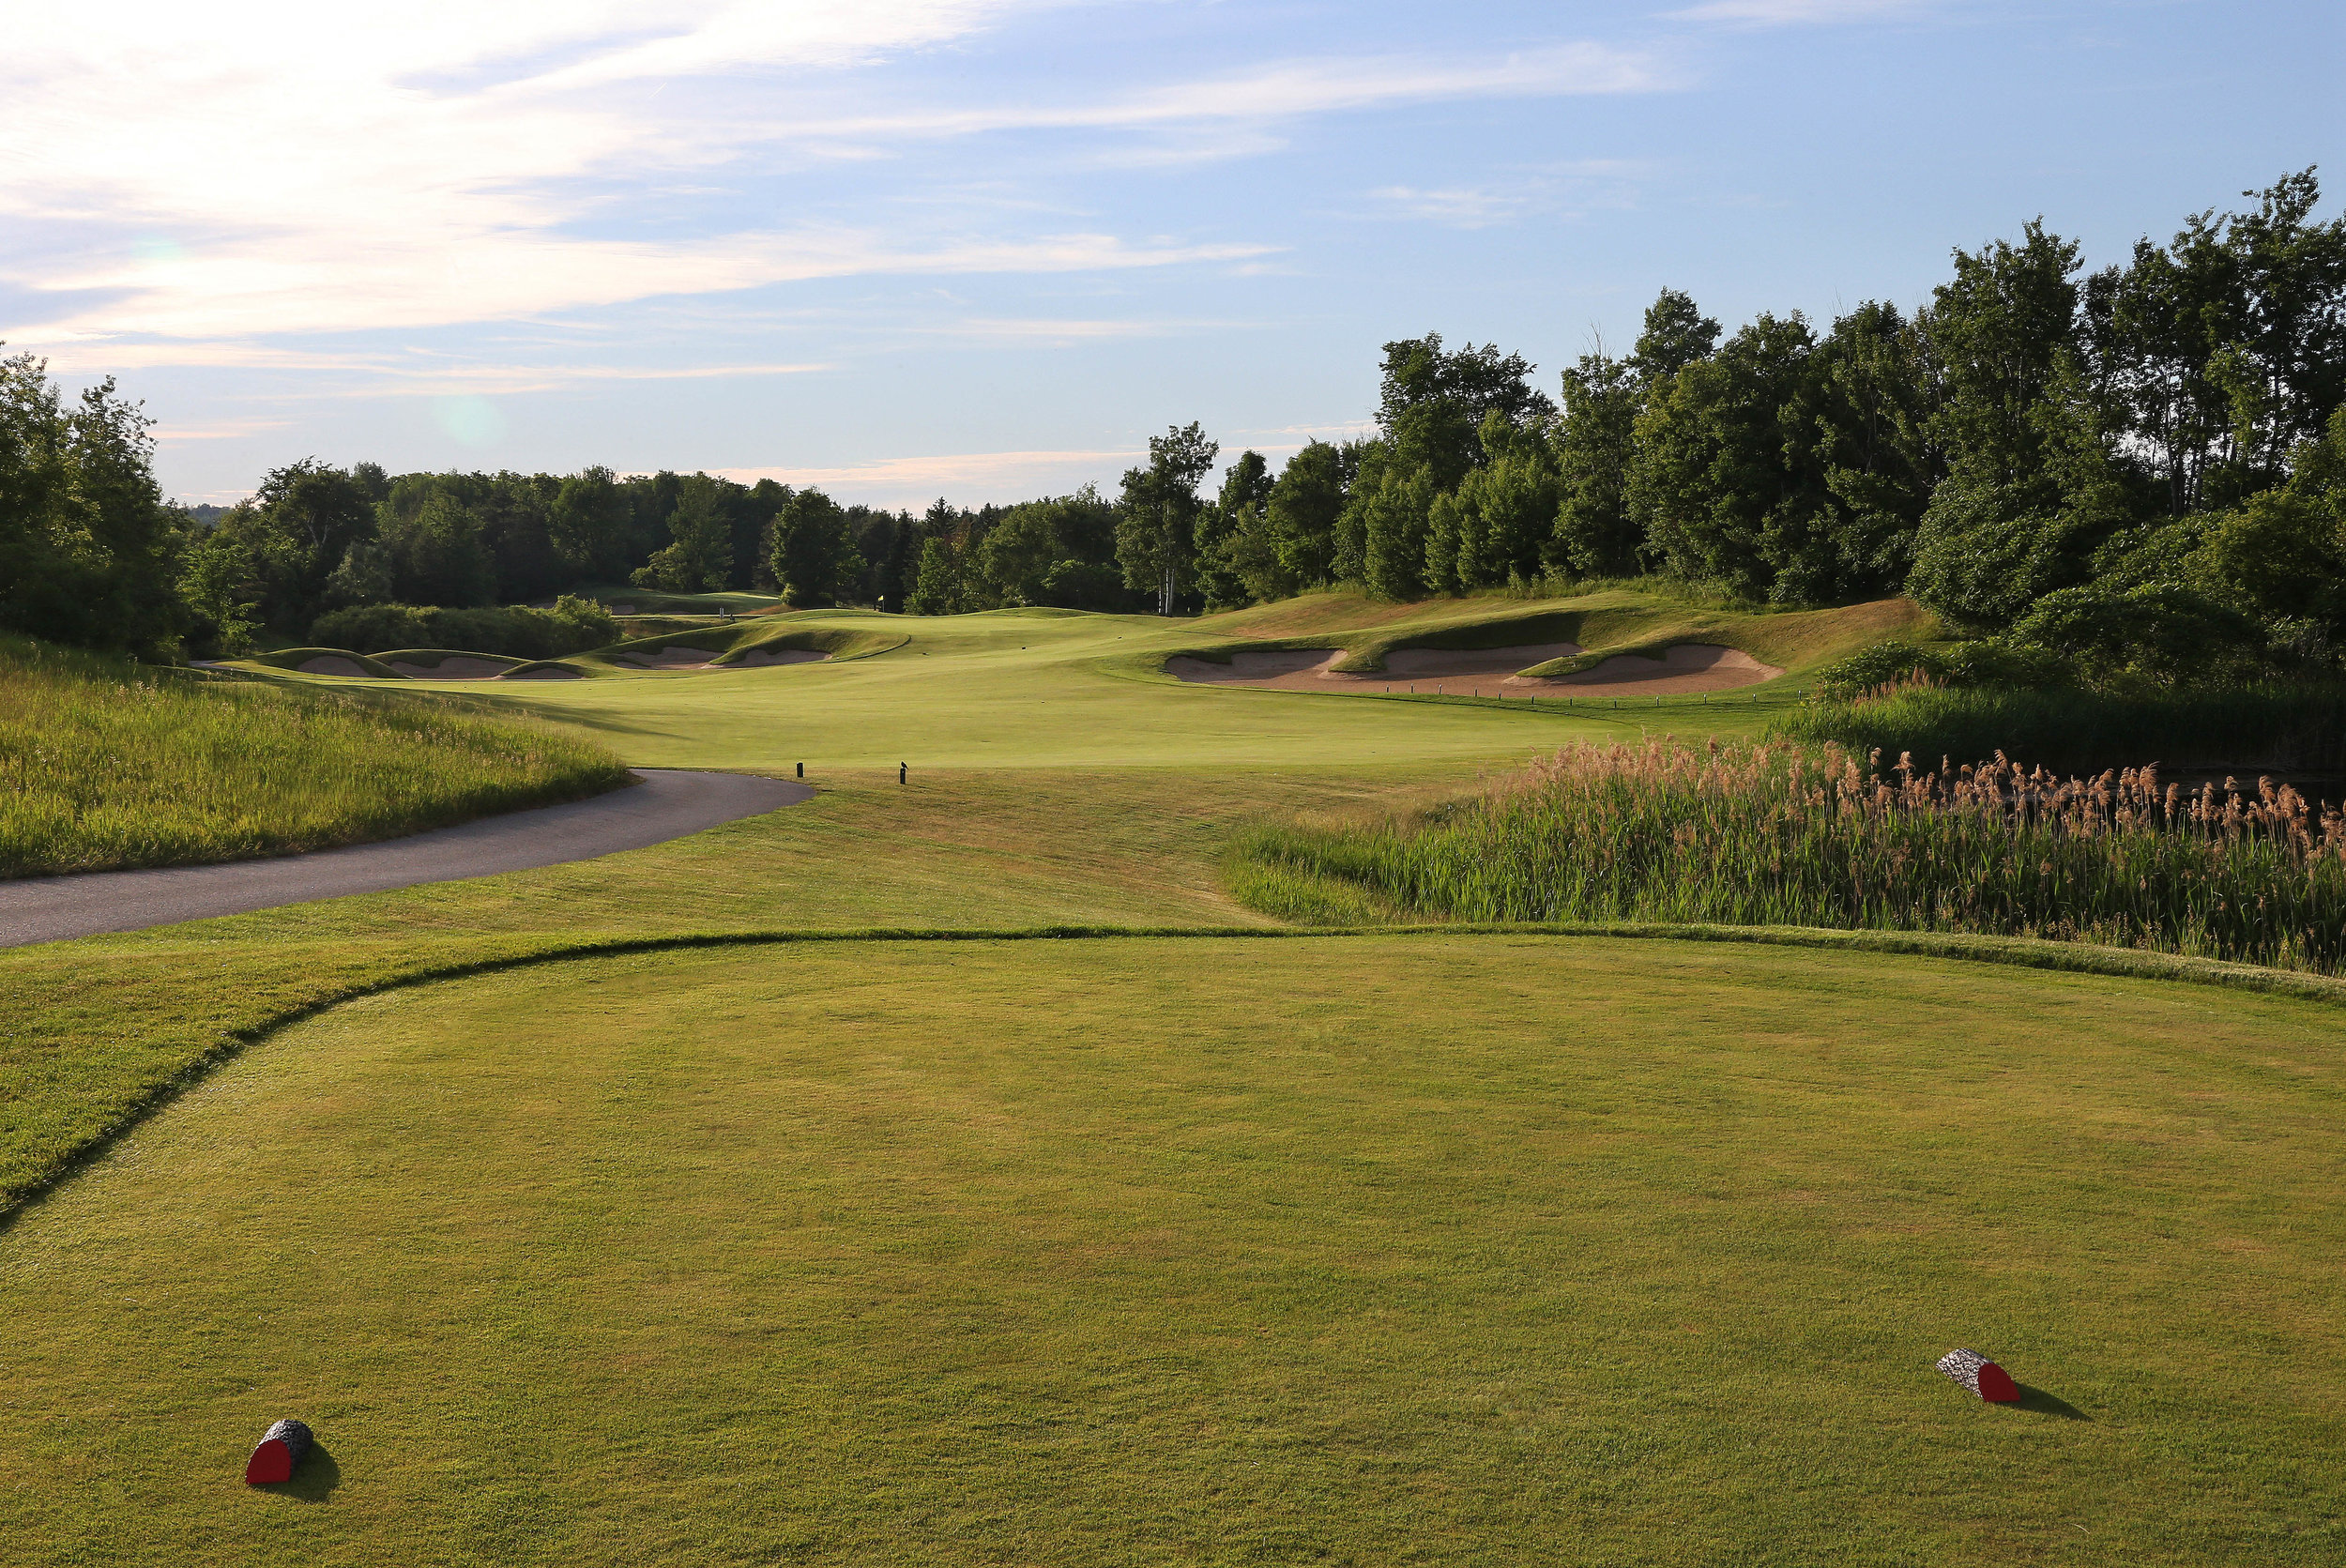 The sixth tee (Photo by Claus Andersen)